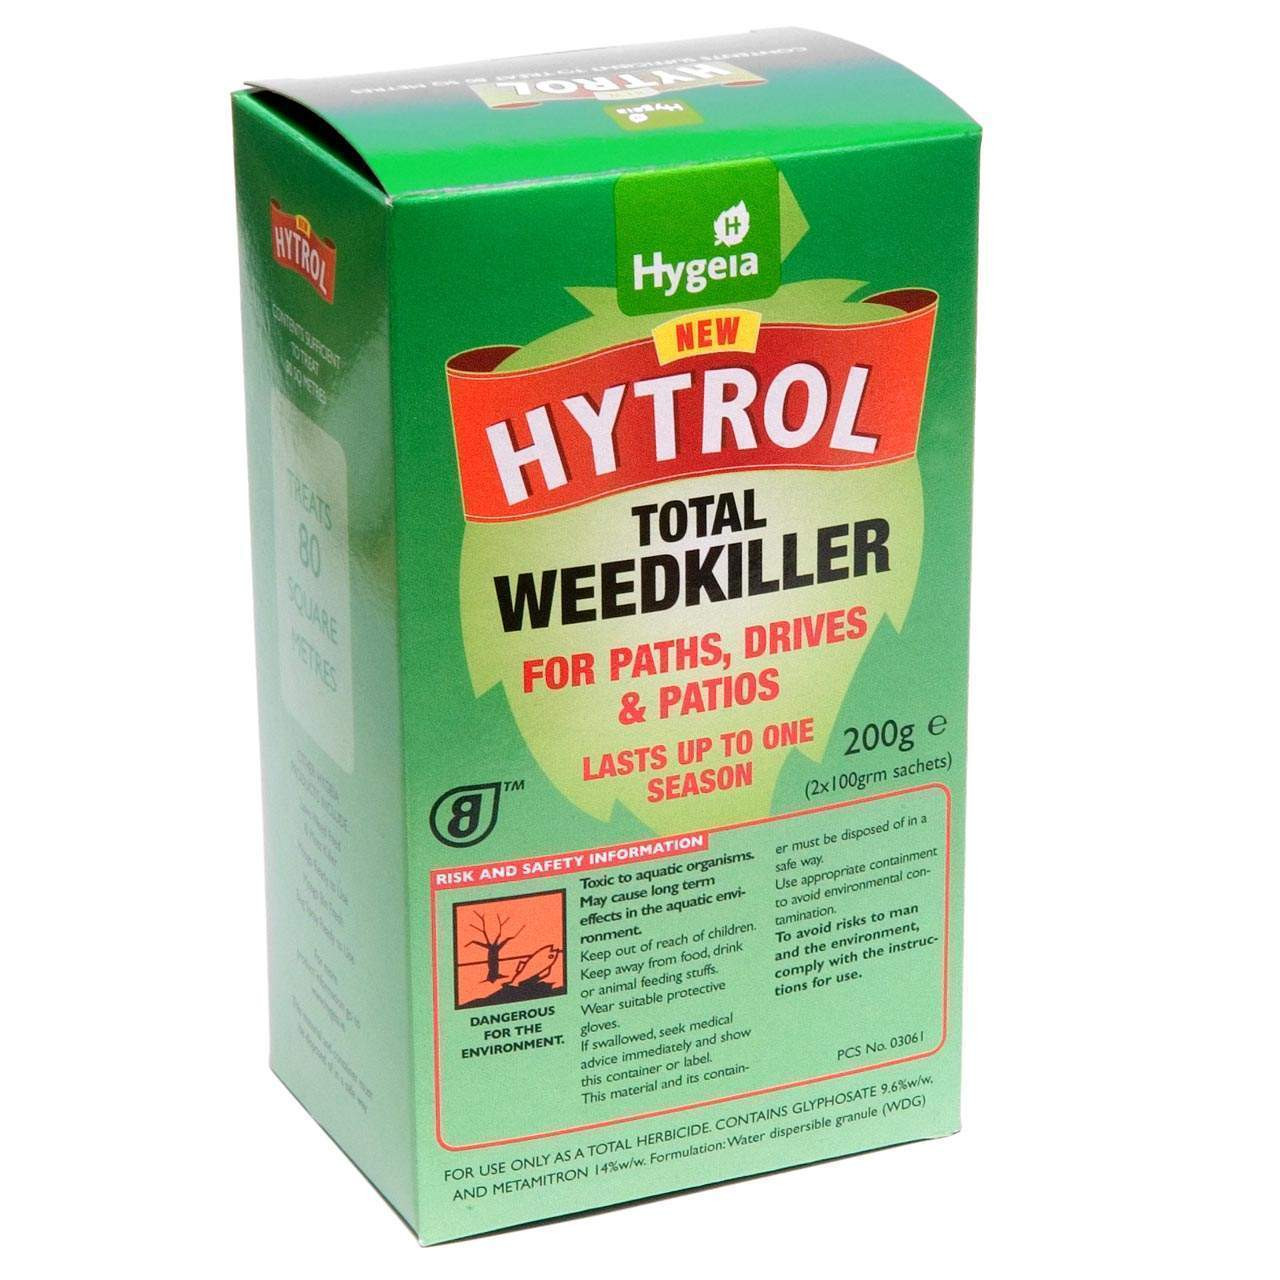 New Hytrol Total Weedkiller 400g (Paths, Drives & Patios)